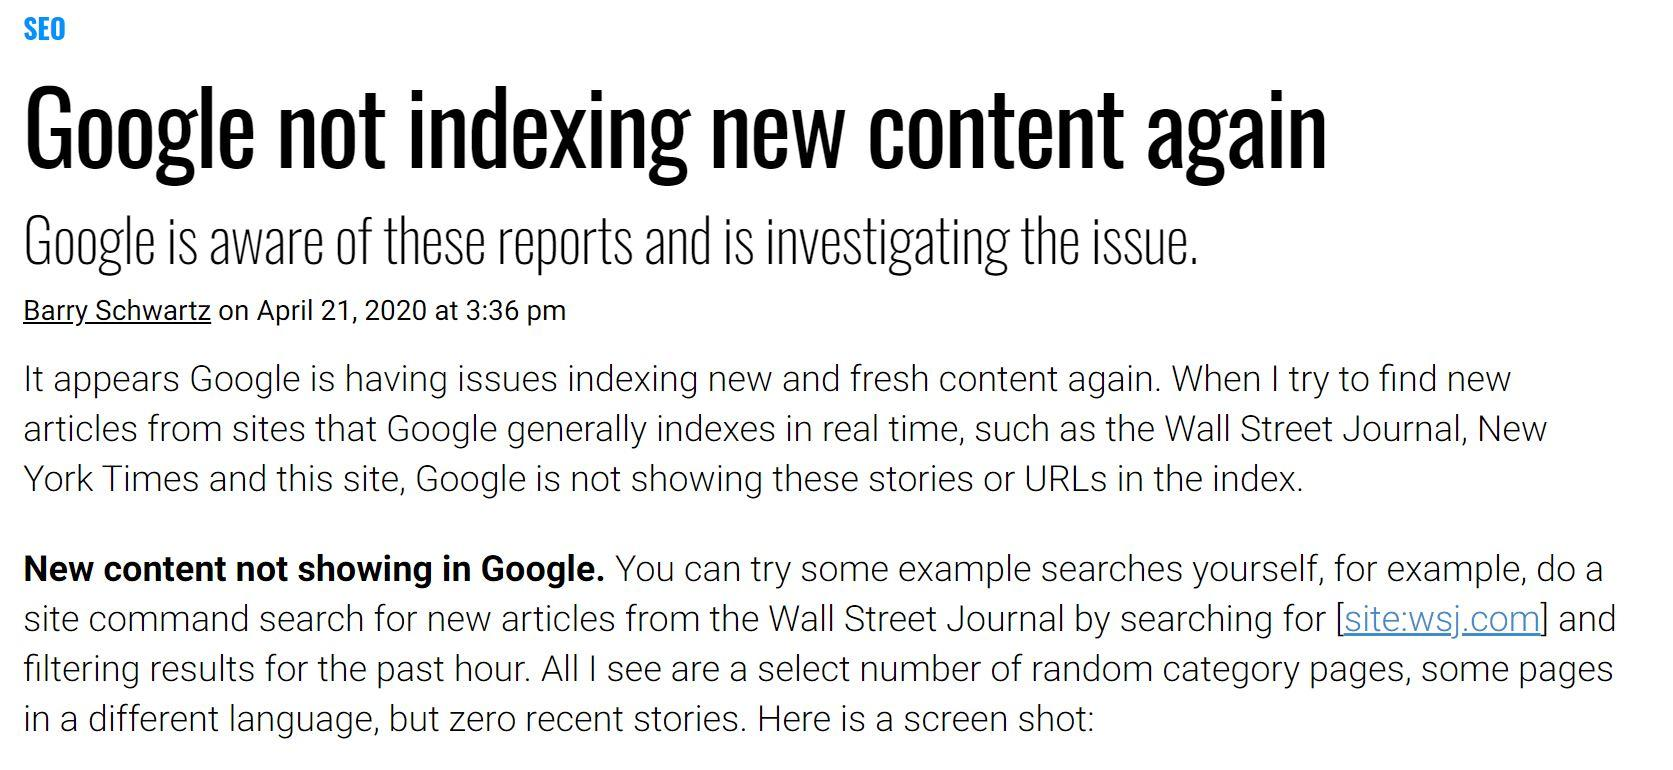 Google not indexing new content image